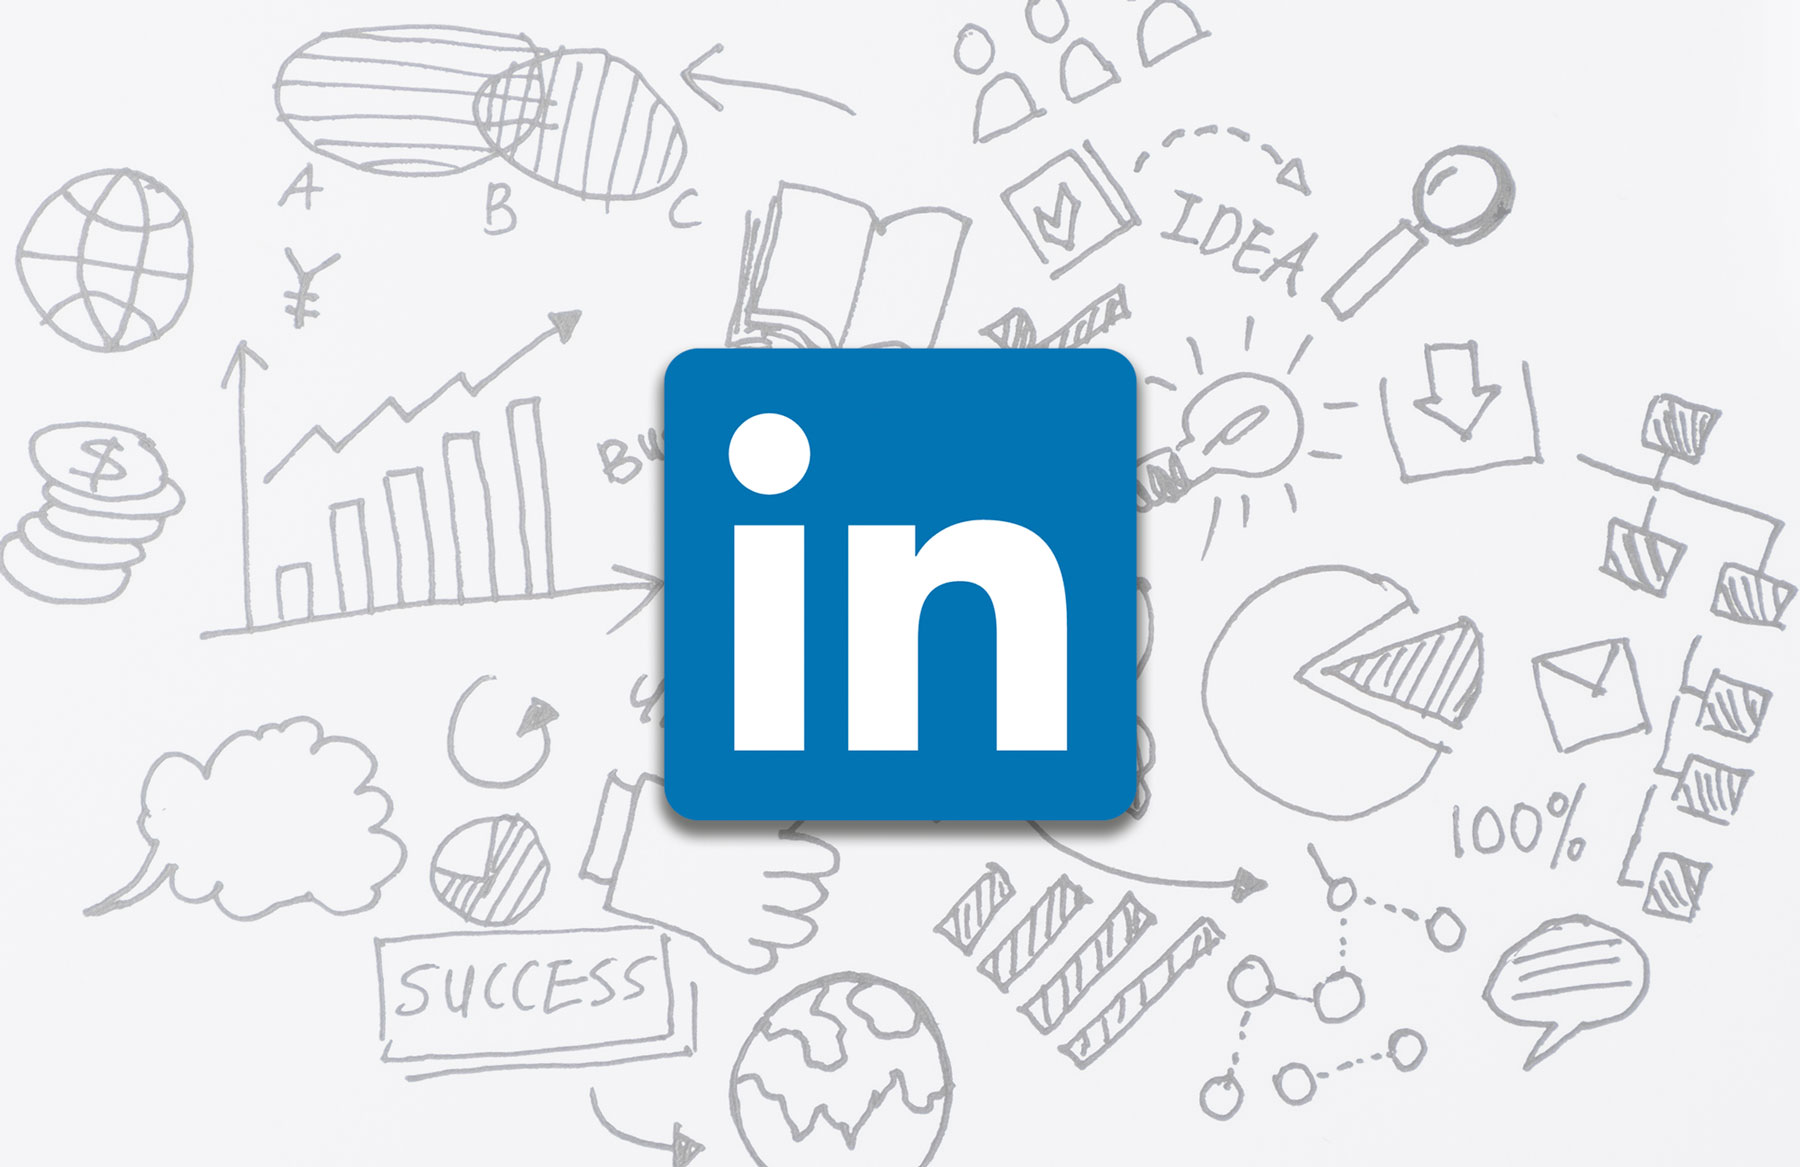 The Ultimate Guide to Business Marketing on LinkedIn